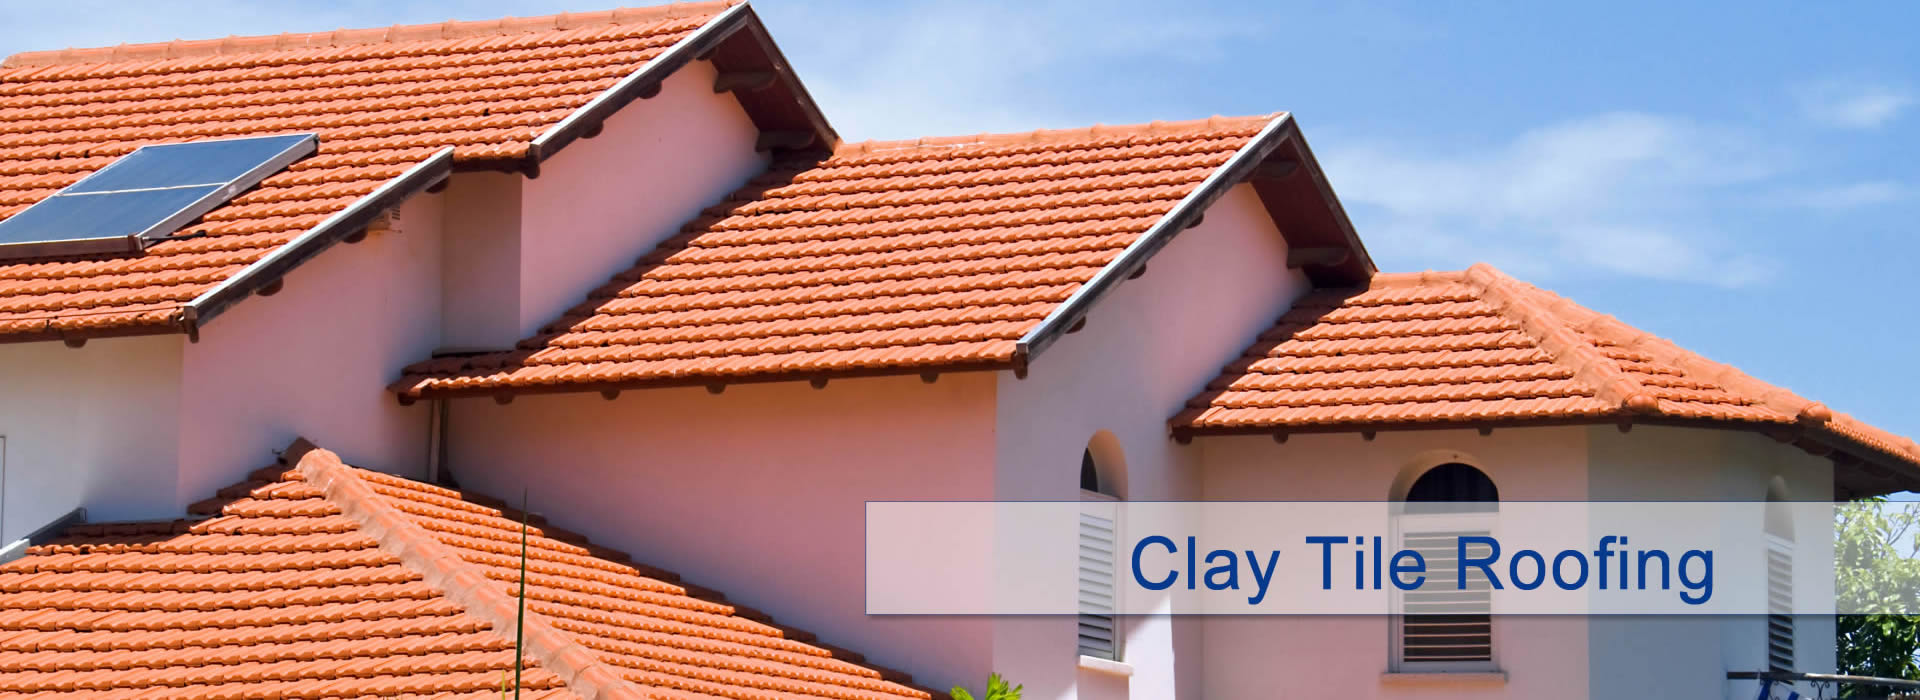 Spanish tile roofing home design ideas and pictures for Clay tile roofs